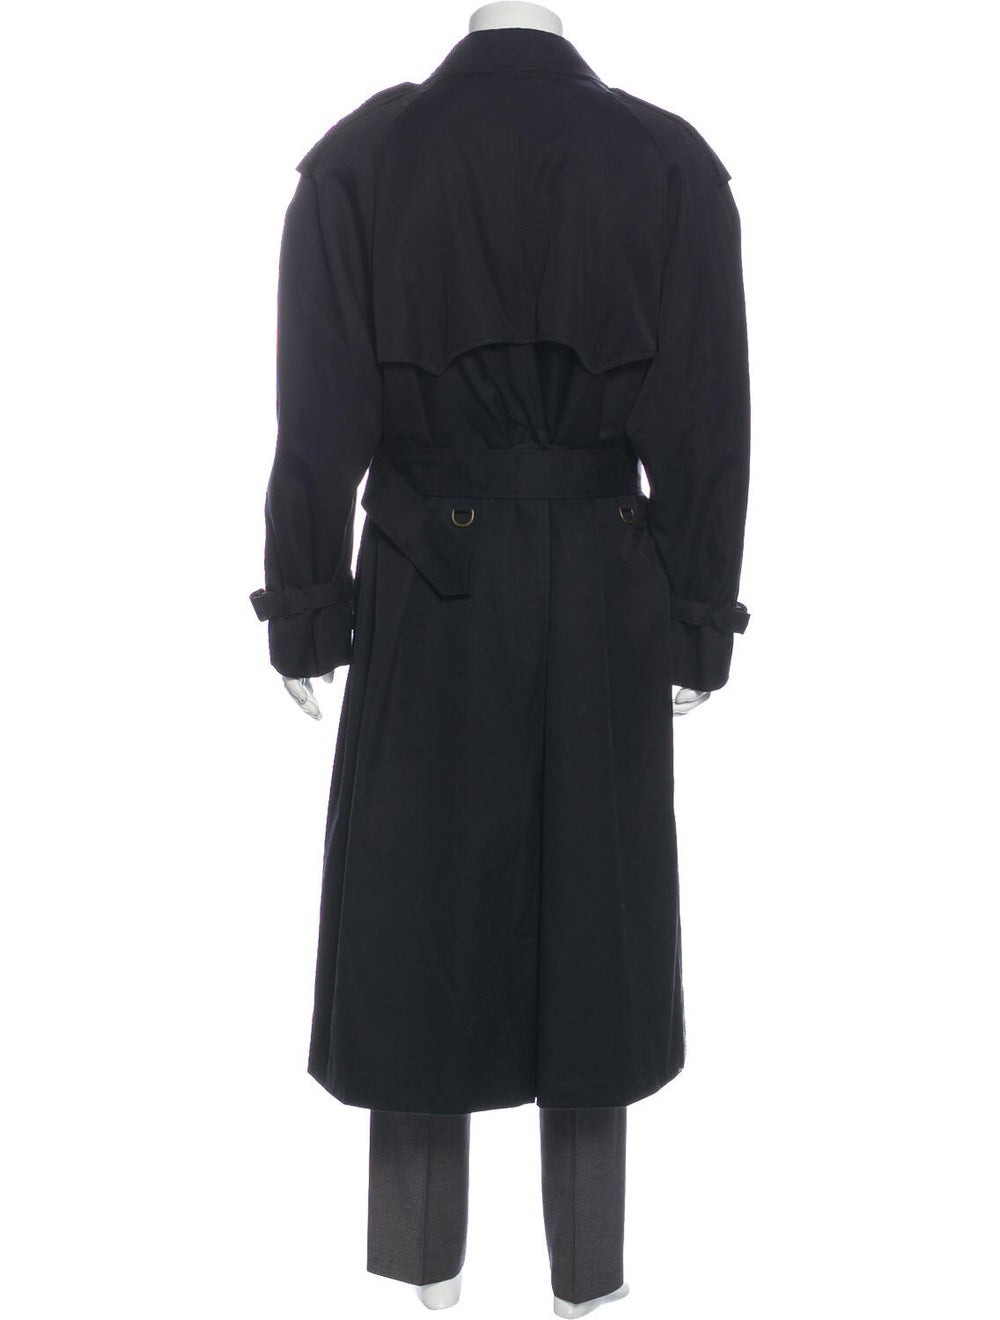 Aquascutum Trench Coat Black - image 3